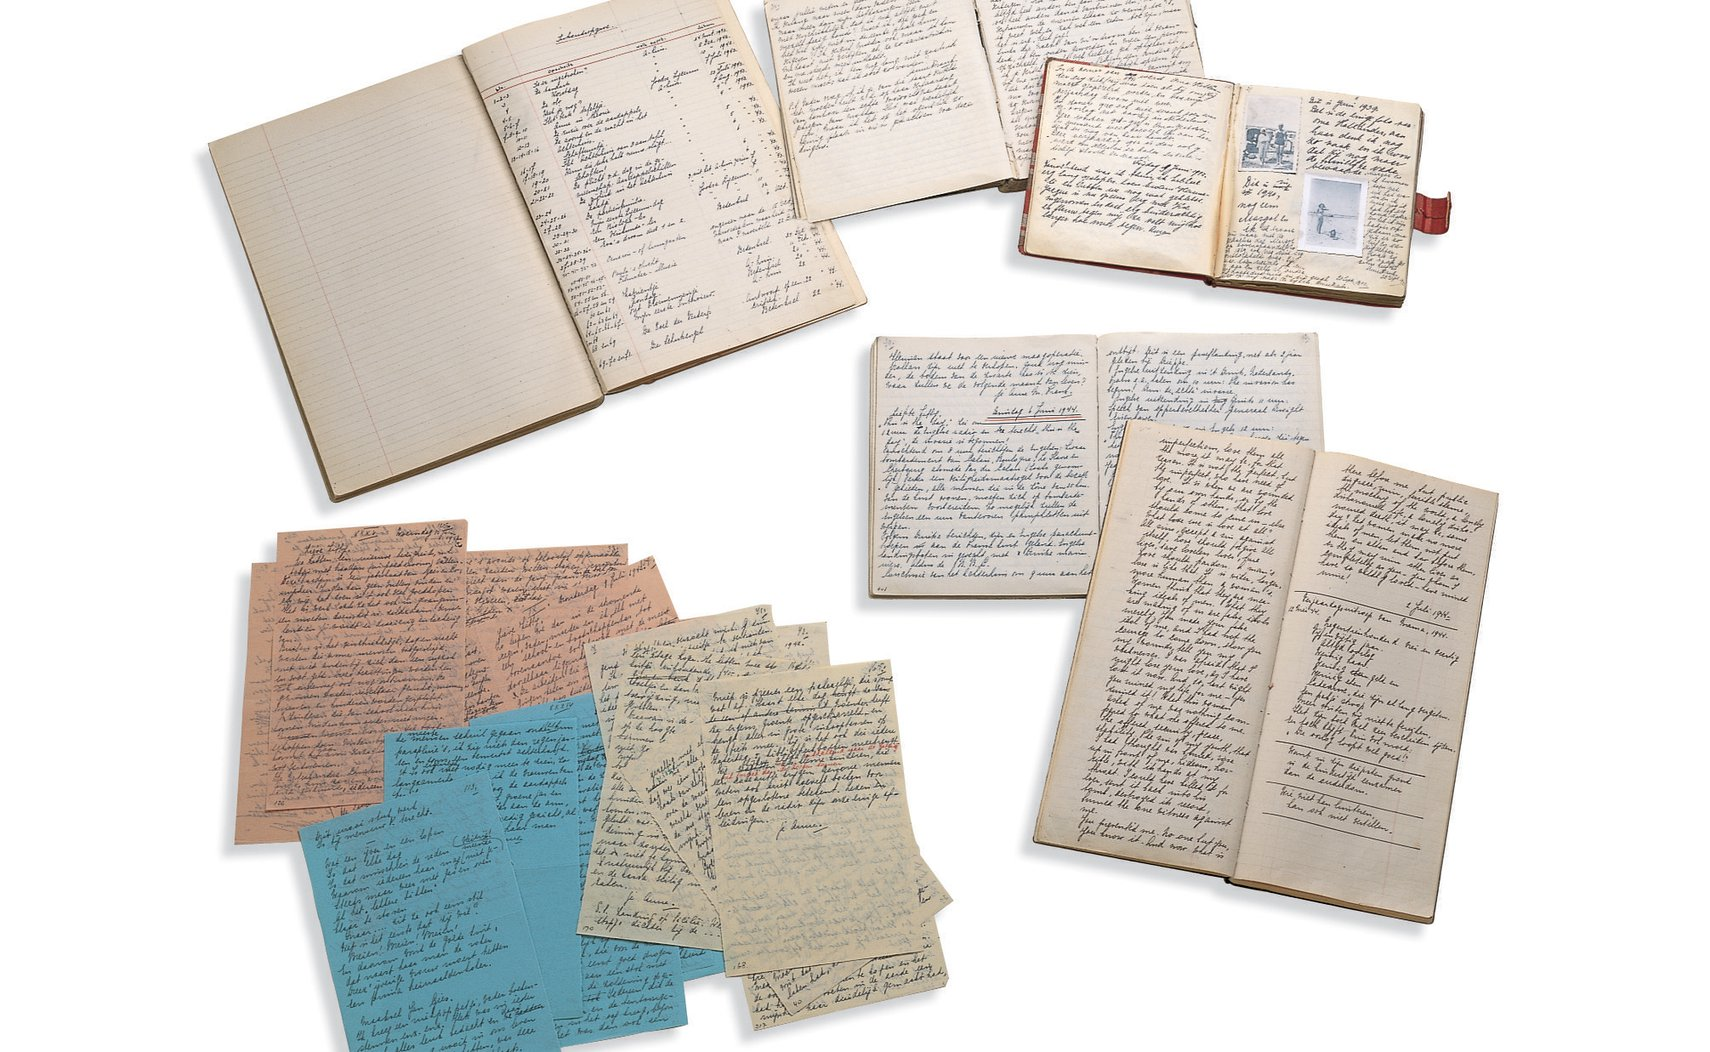 The manuscripts of Anne Frank